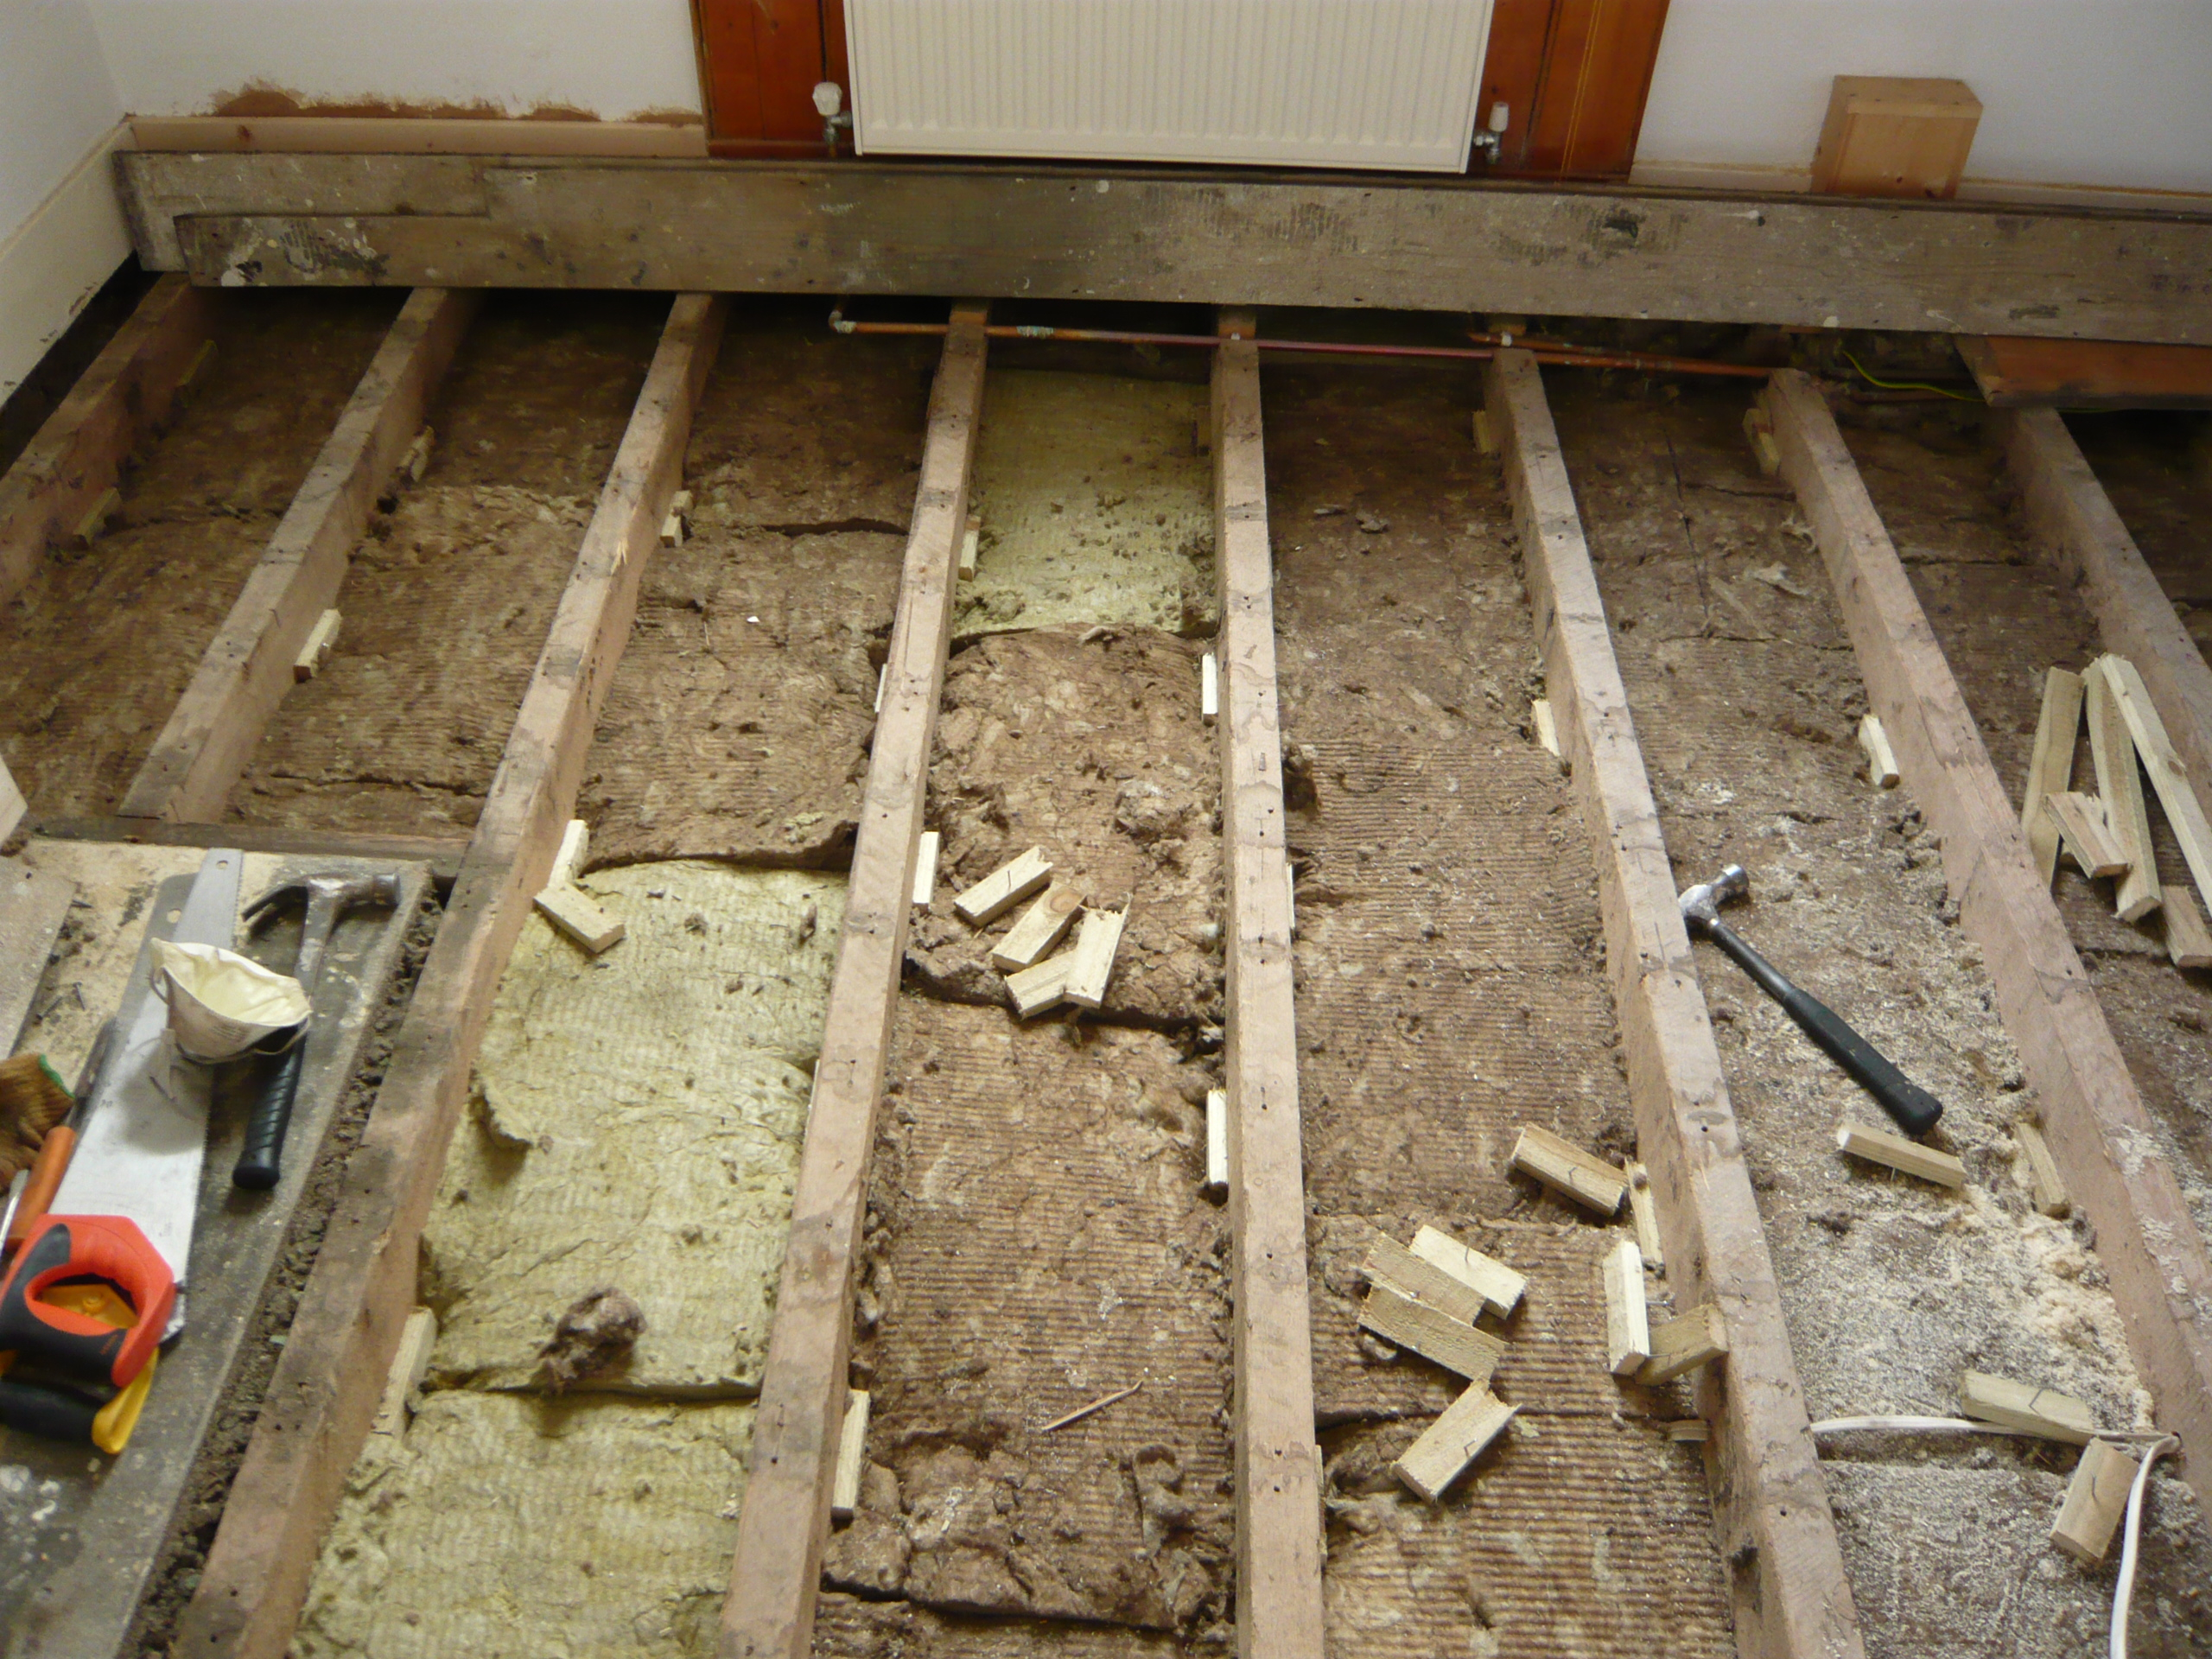 Ground Floor Insulation Can Reduce Heat Loss By Up To 92 Per Cent